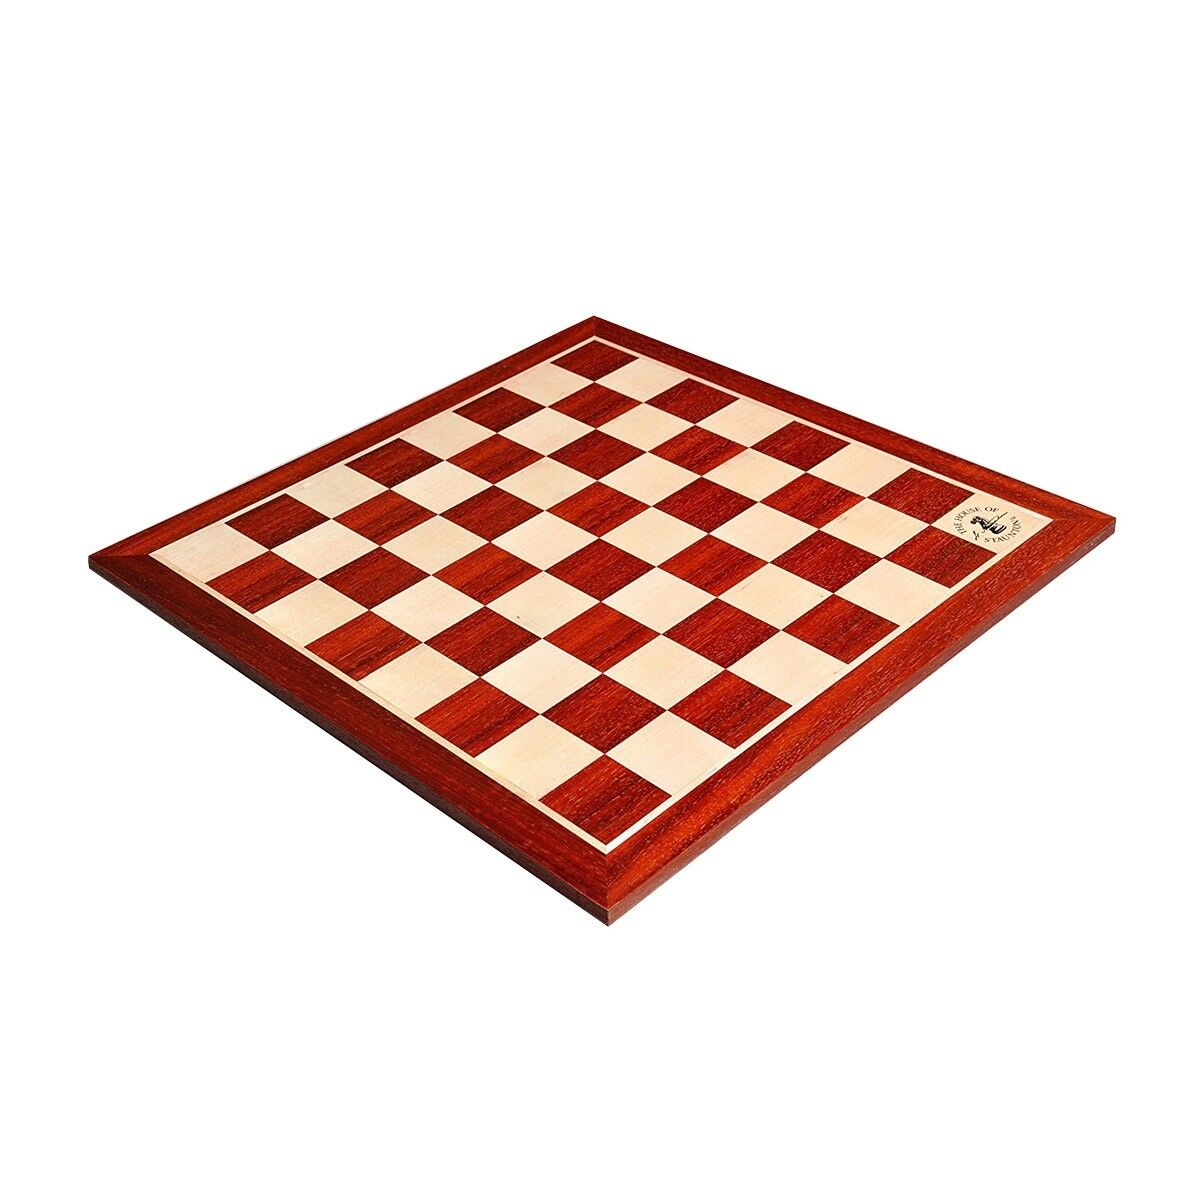 Padauk & Maple Wooden Chess tavola - 2.25  With  Logo  vendita scontata